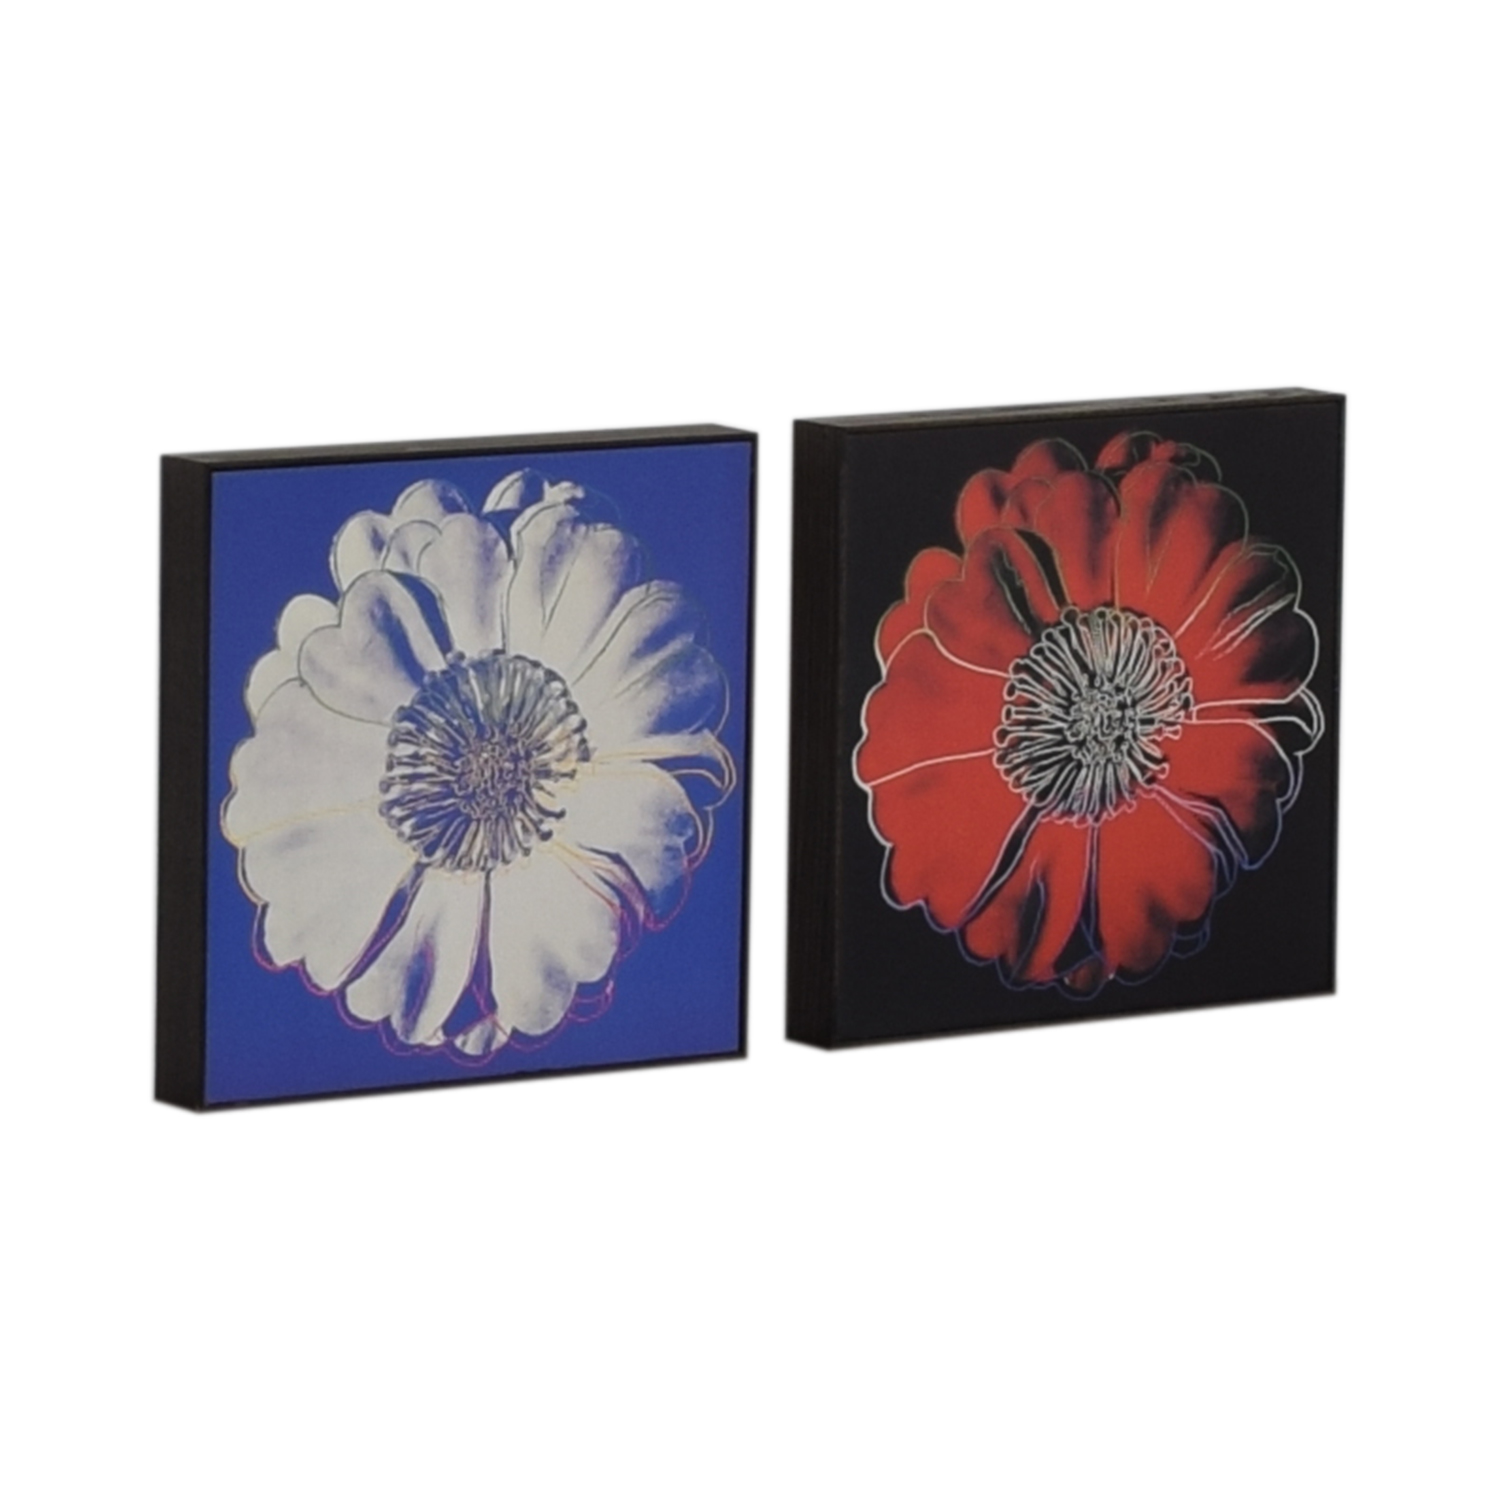 Andy Warhol Framed Flower Prints second hand